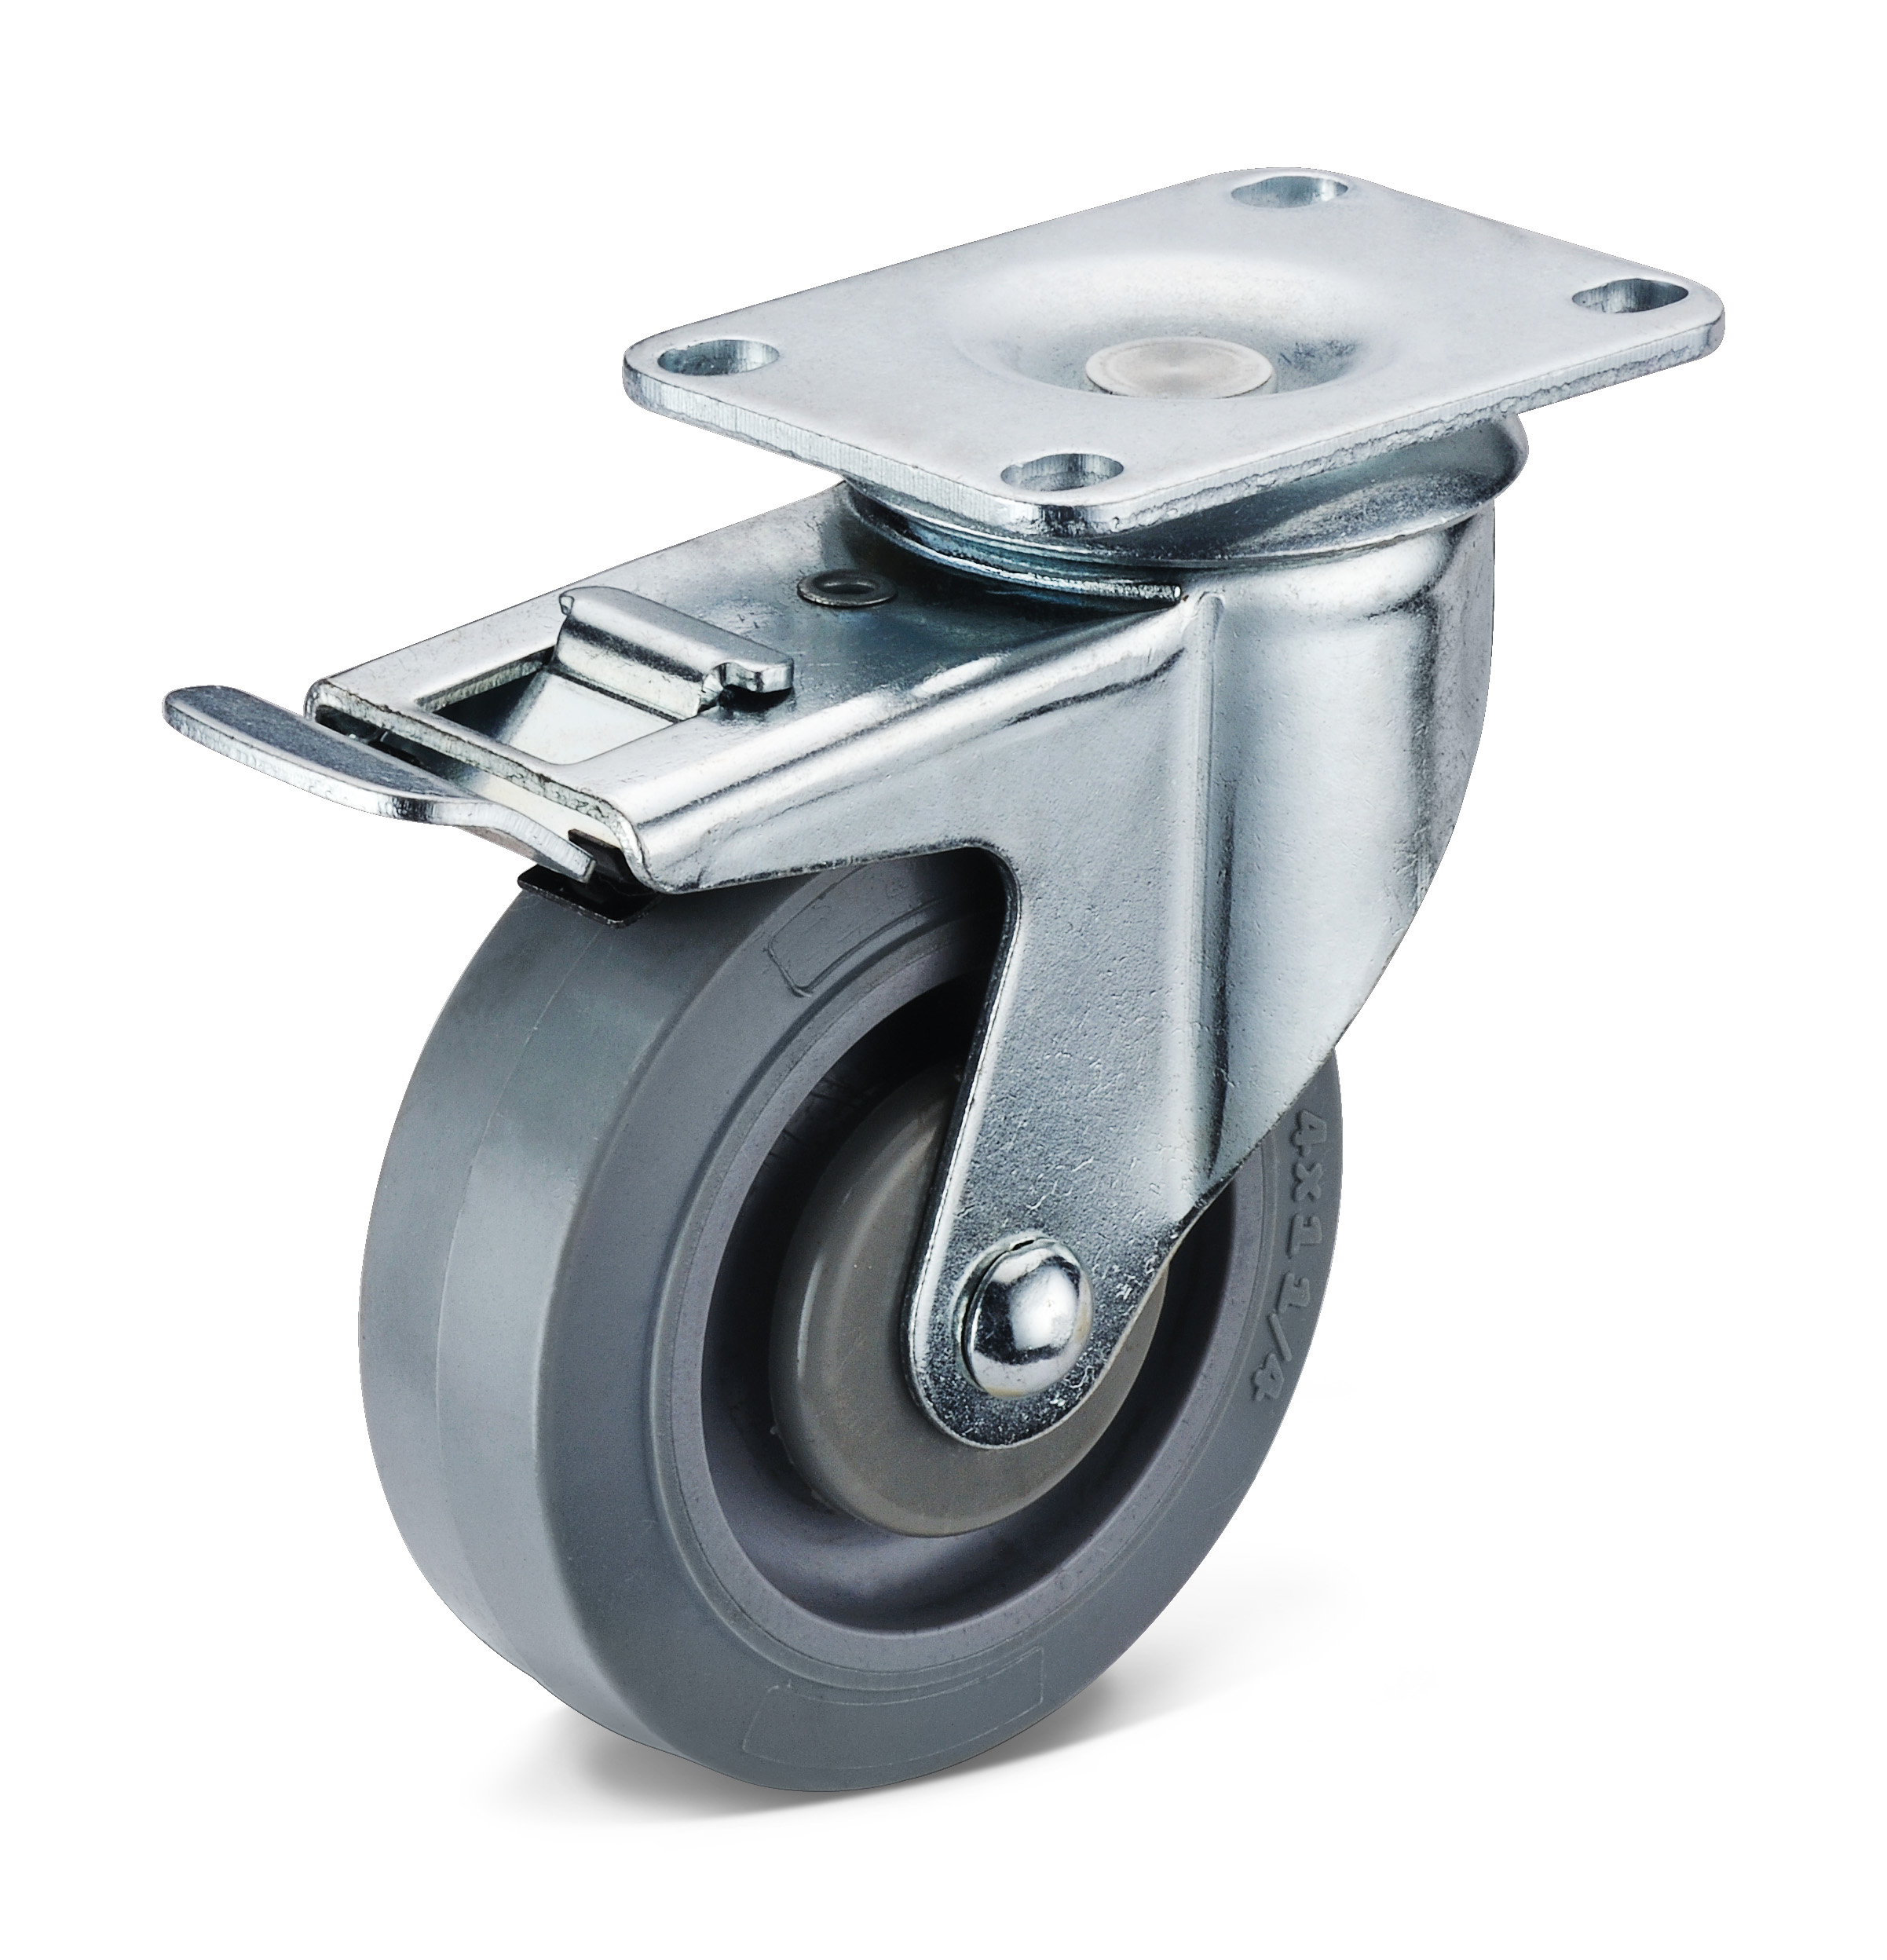 TPR Activity Double Brake Casters